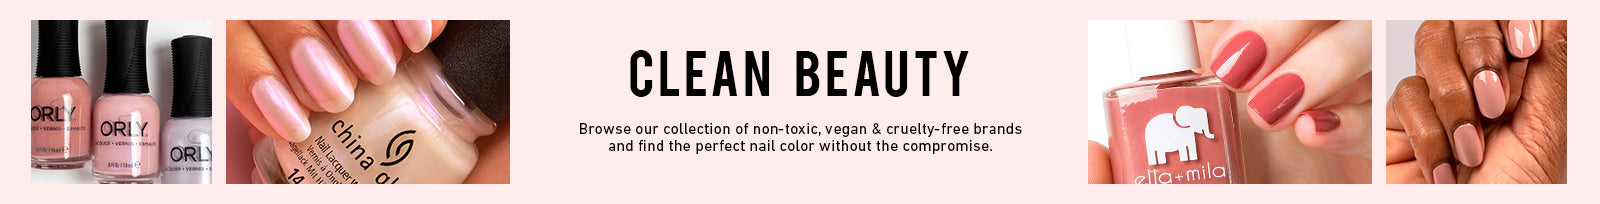 Non-toxic, Vegan & Cruelty-Free Products